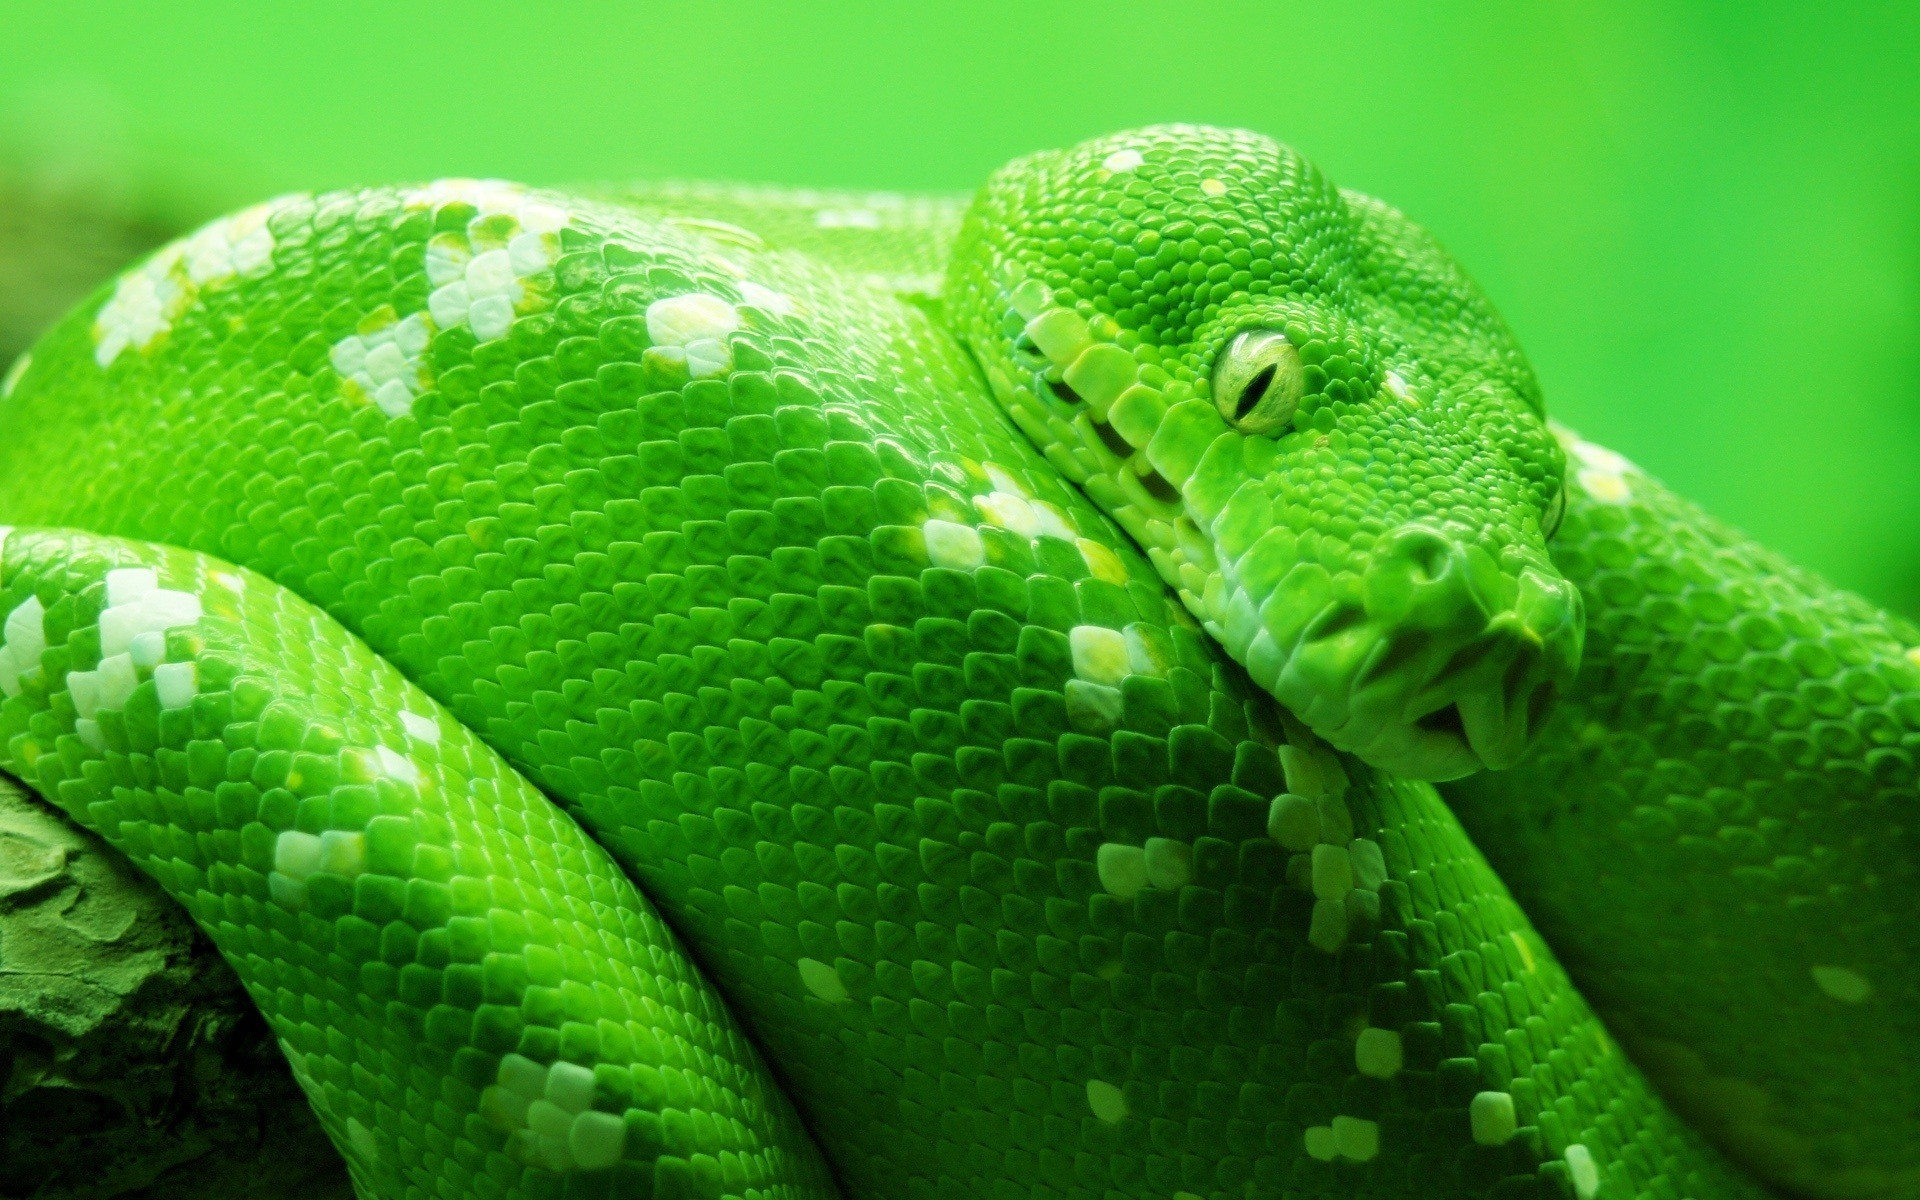 Serpiente color verde - 1920x1200